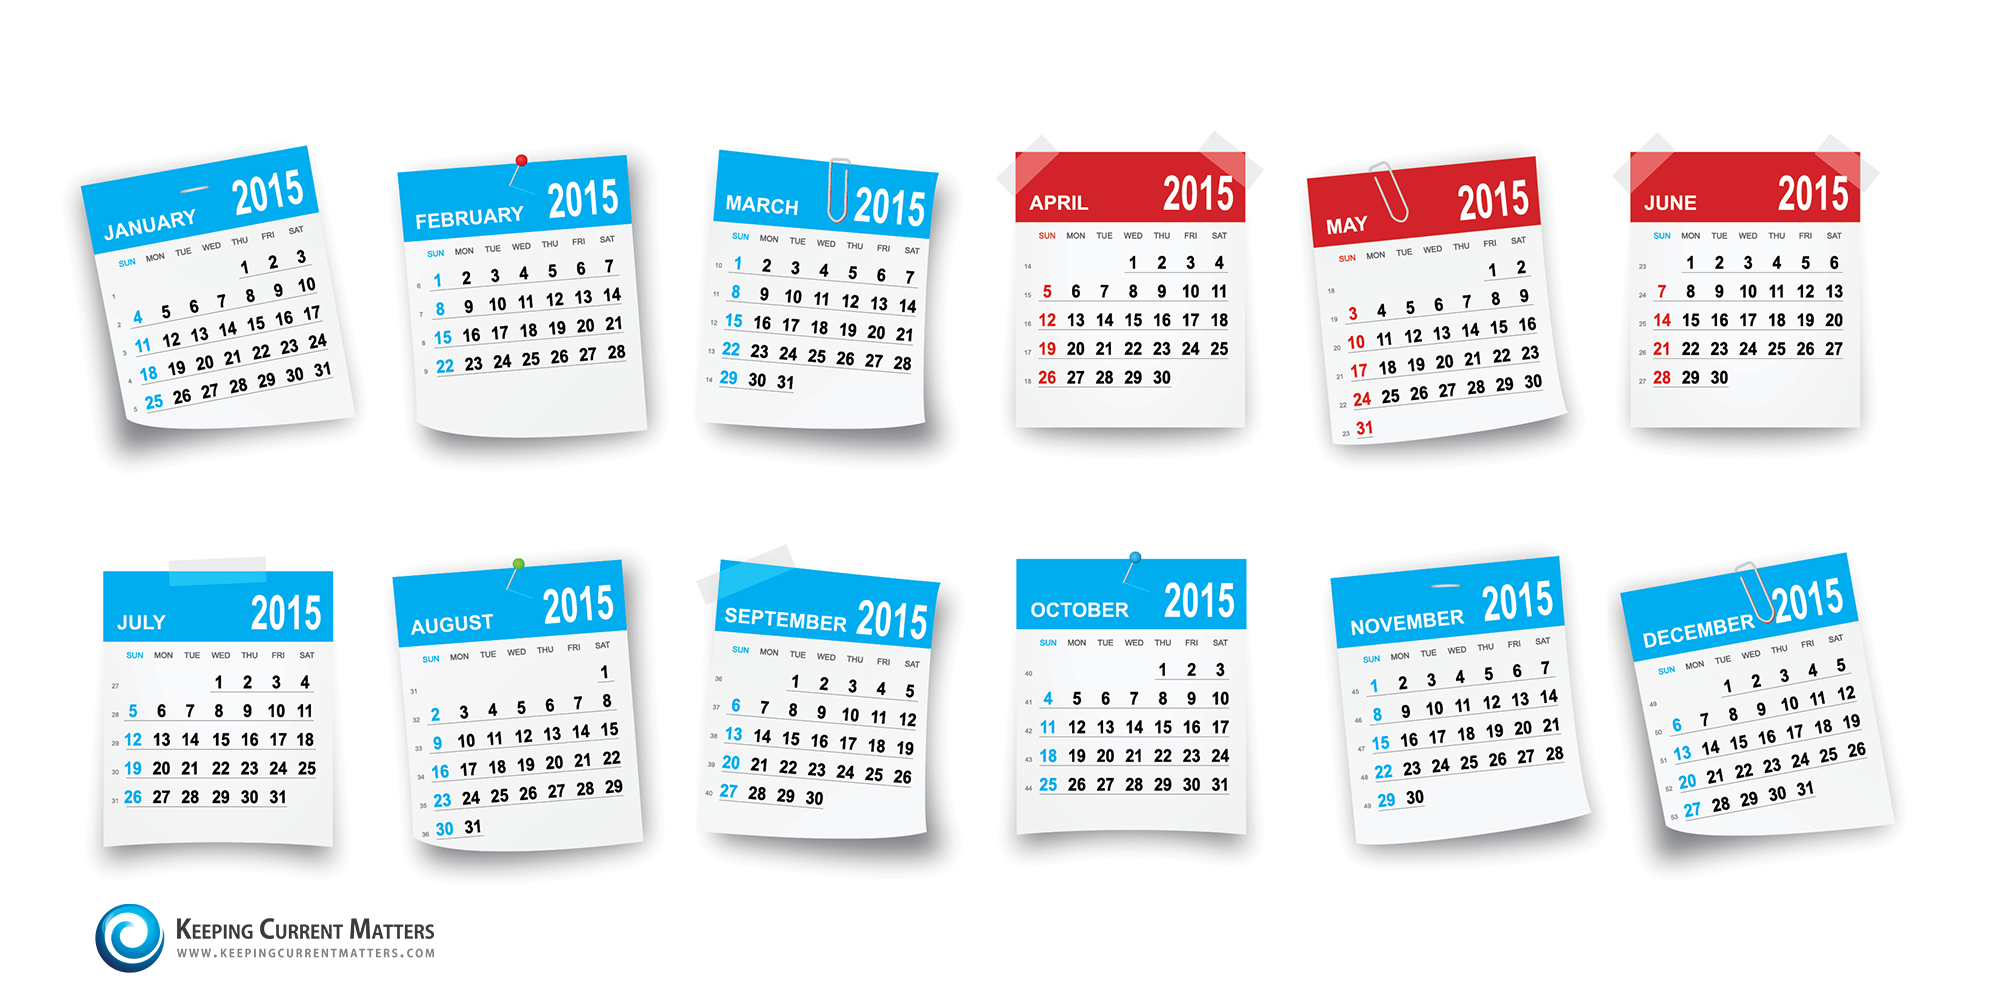 2015 Popular Selling Months   Keeping Current Matters